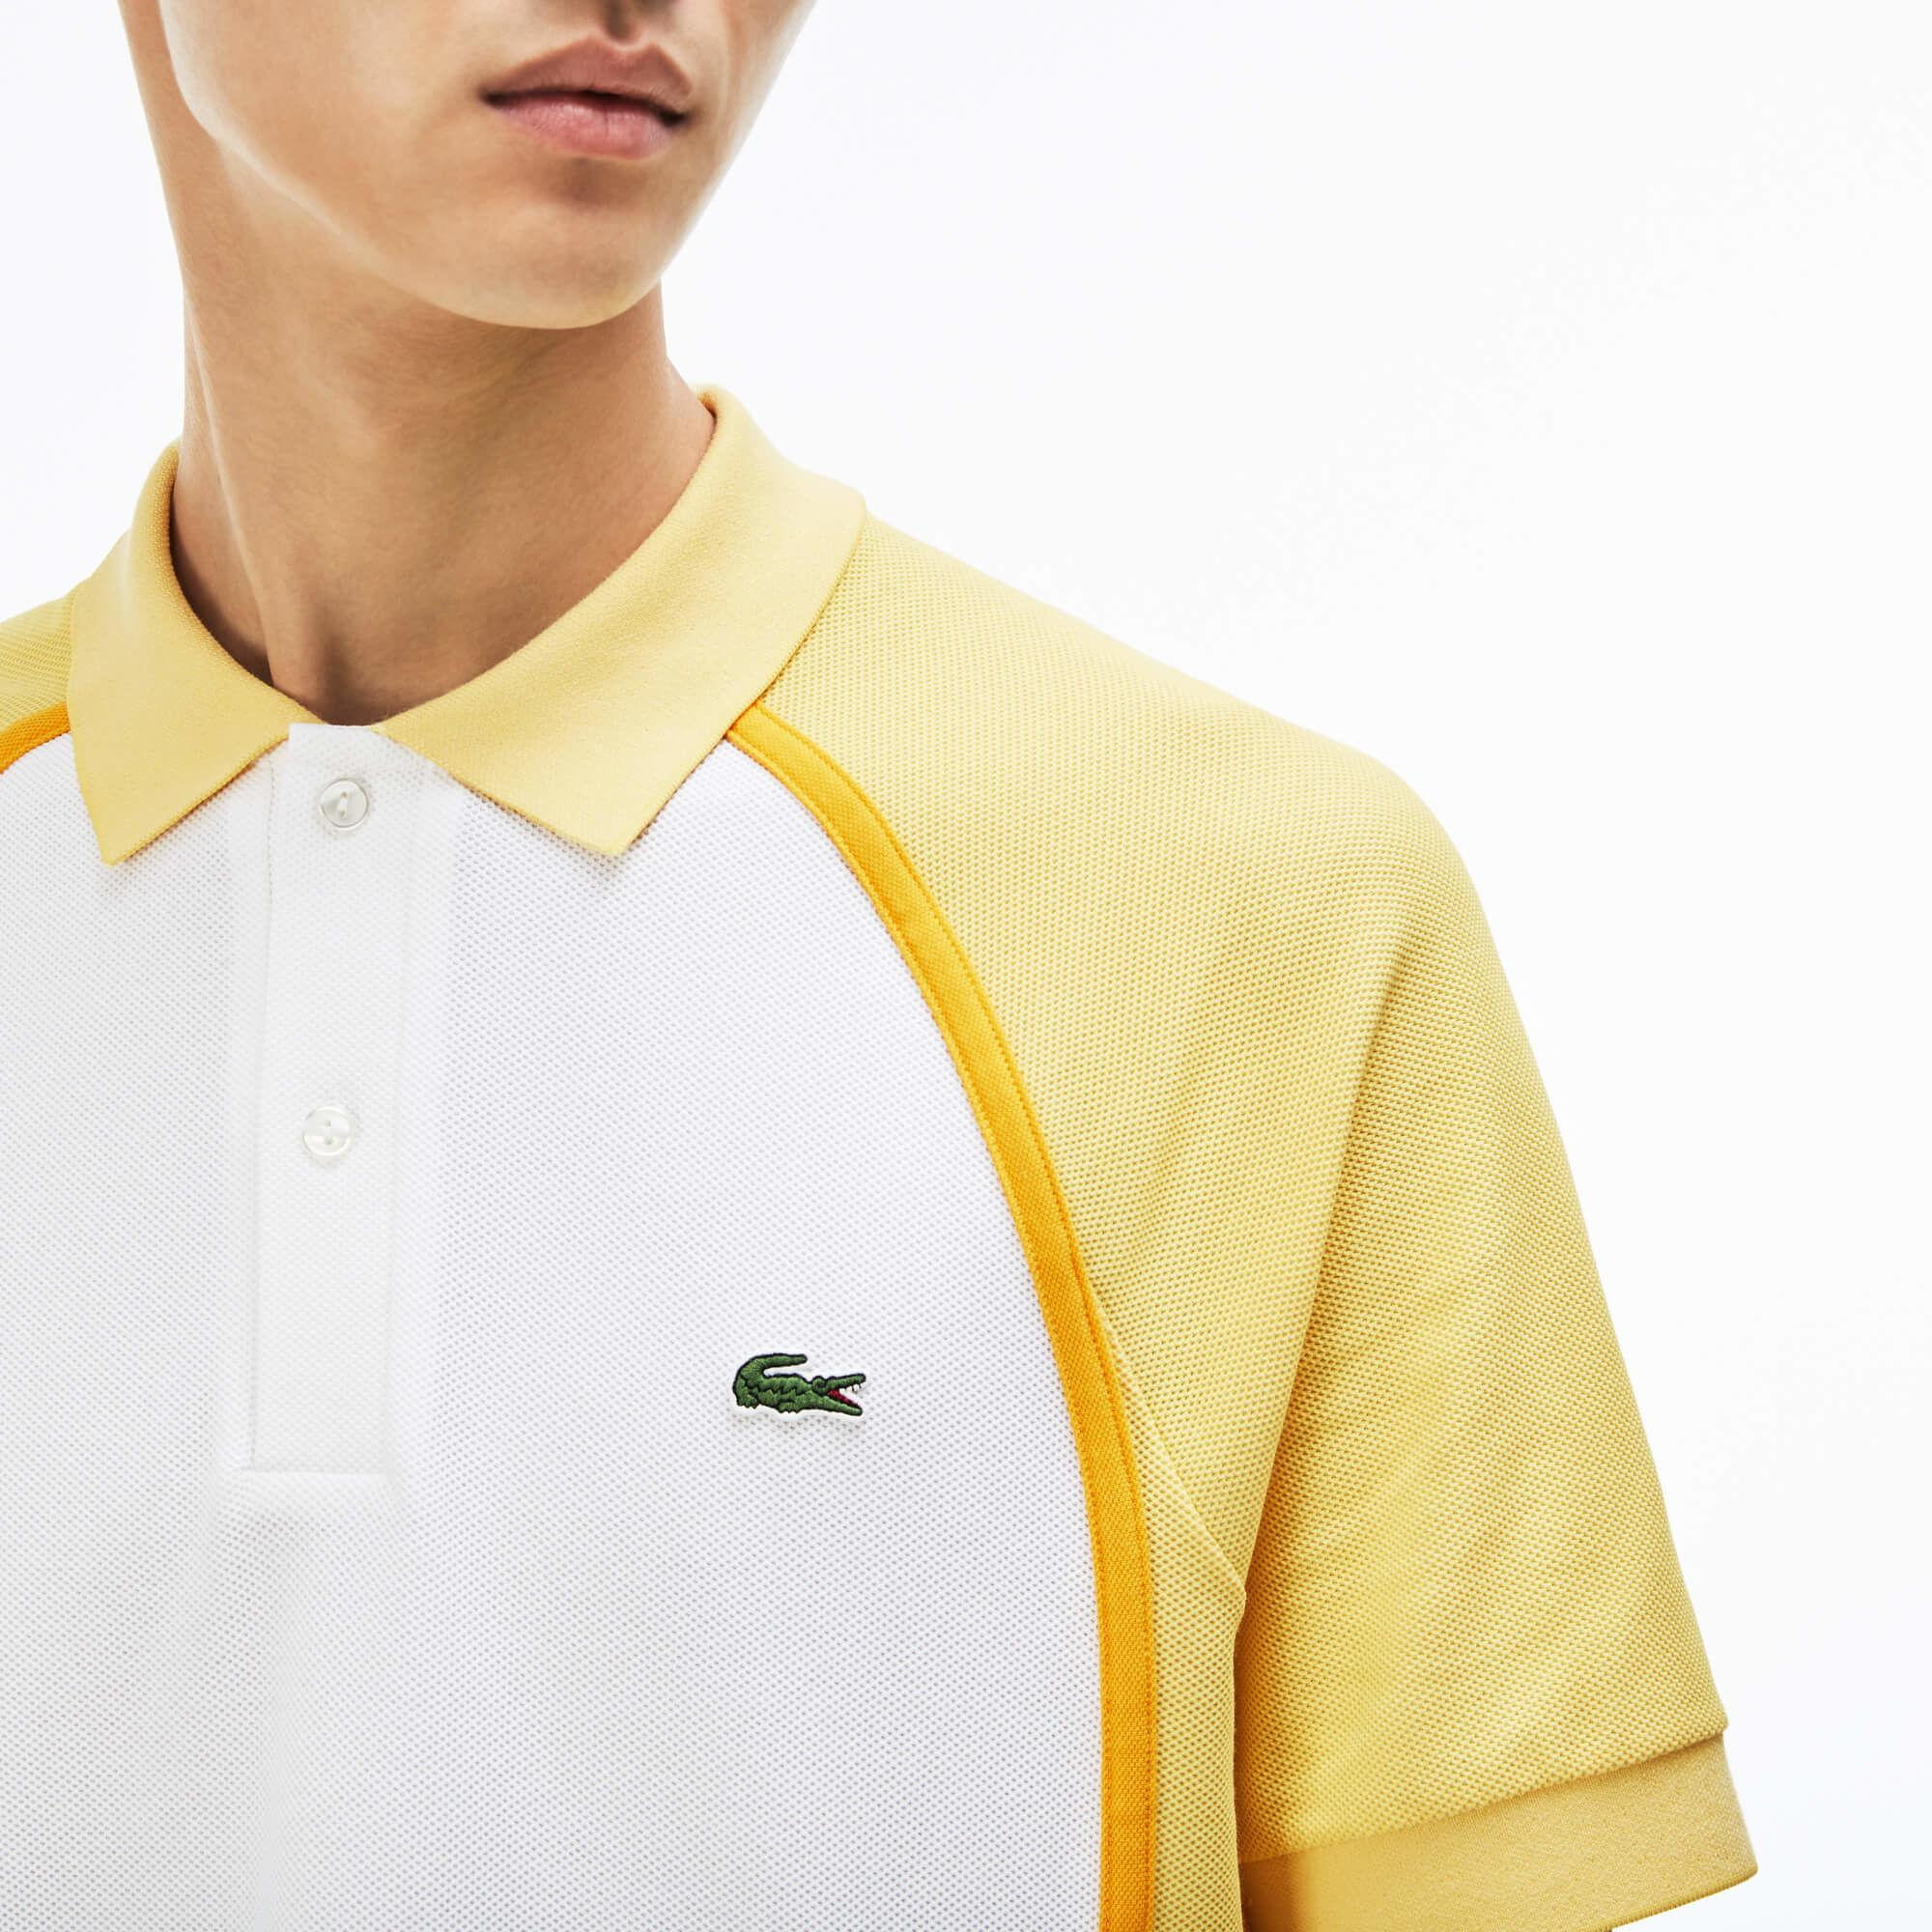 b15450c6b Lyst - Lacoste Made In France Regular Fit Piqué Polo in Yellow for Men